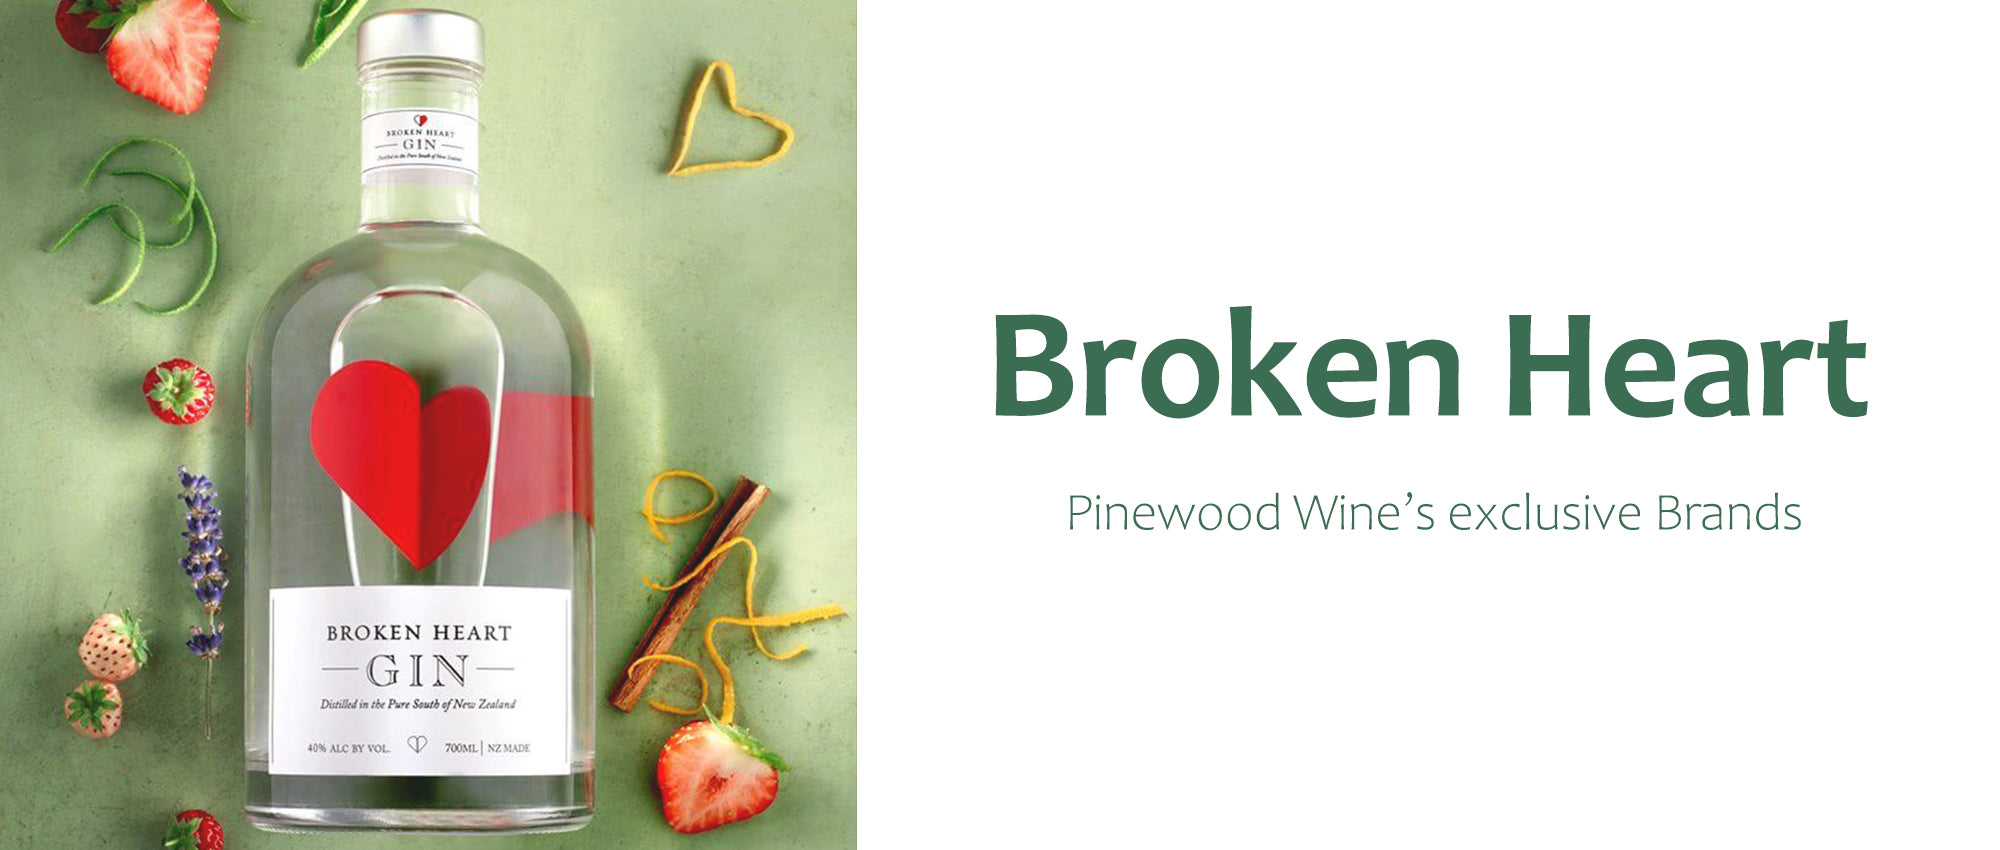 Pinewood Wine: Broken Heart